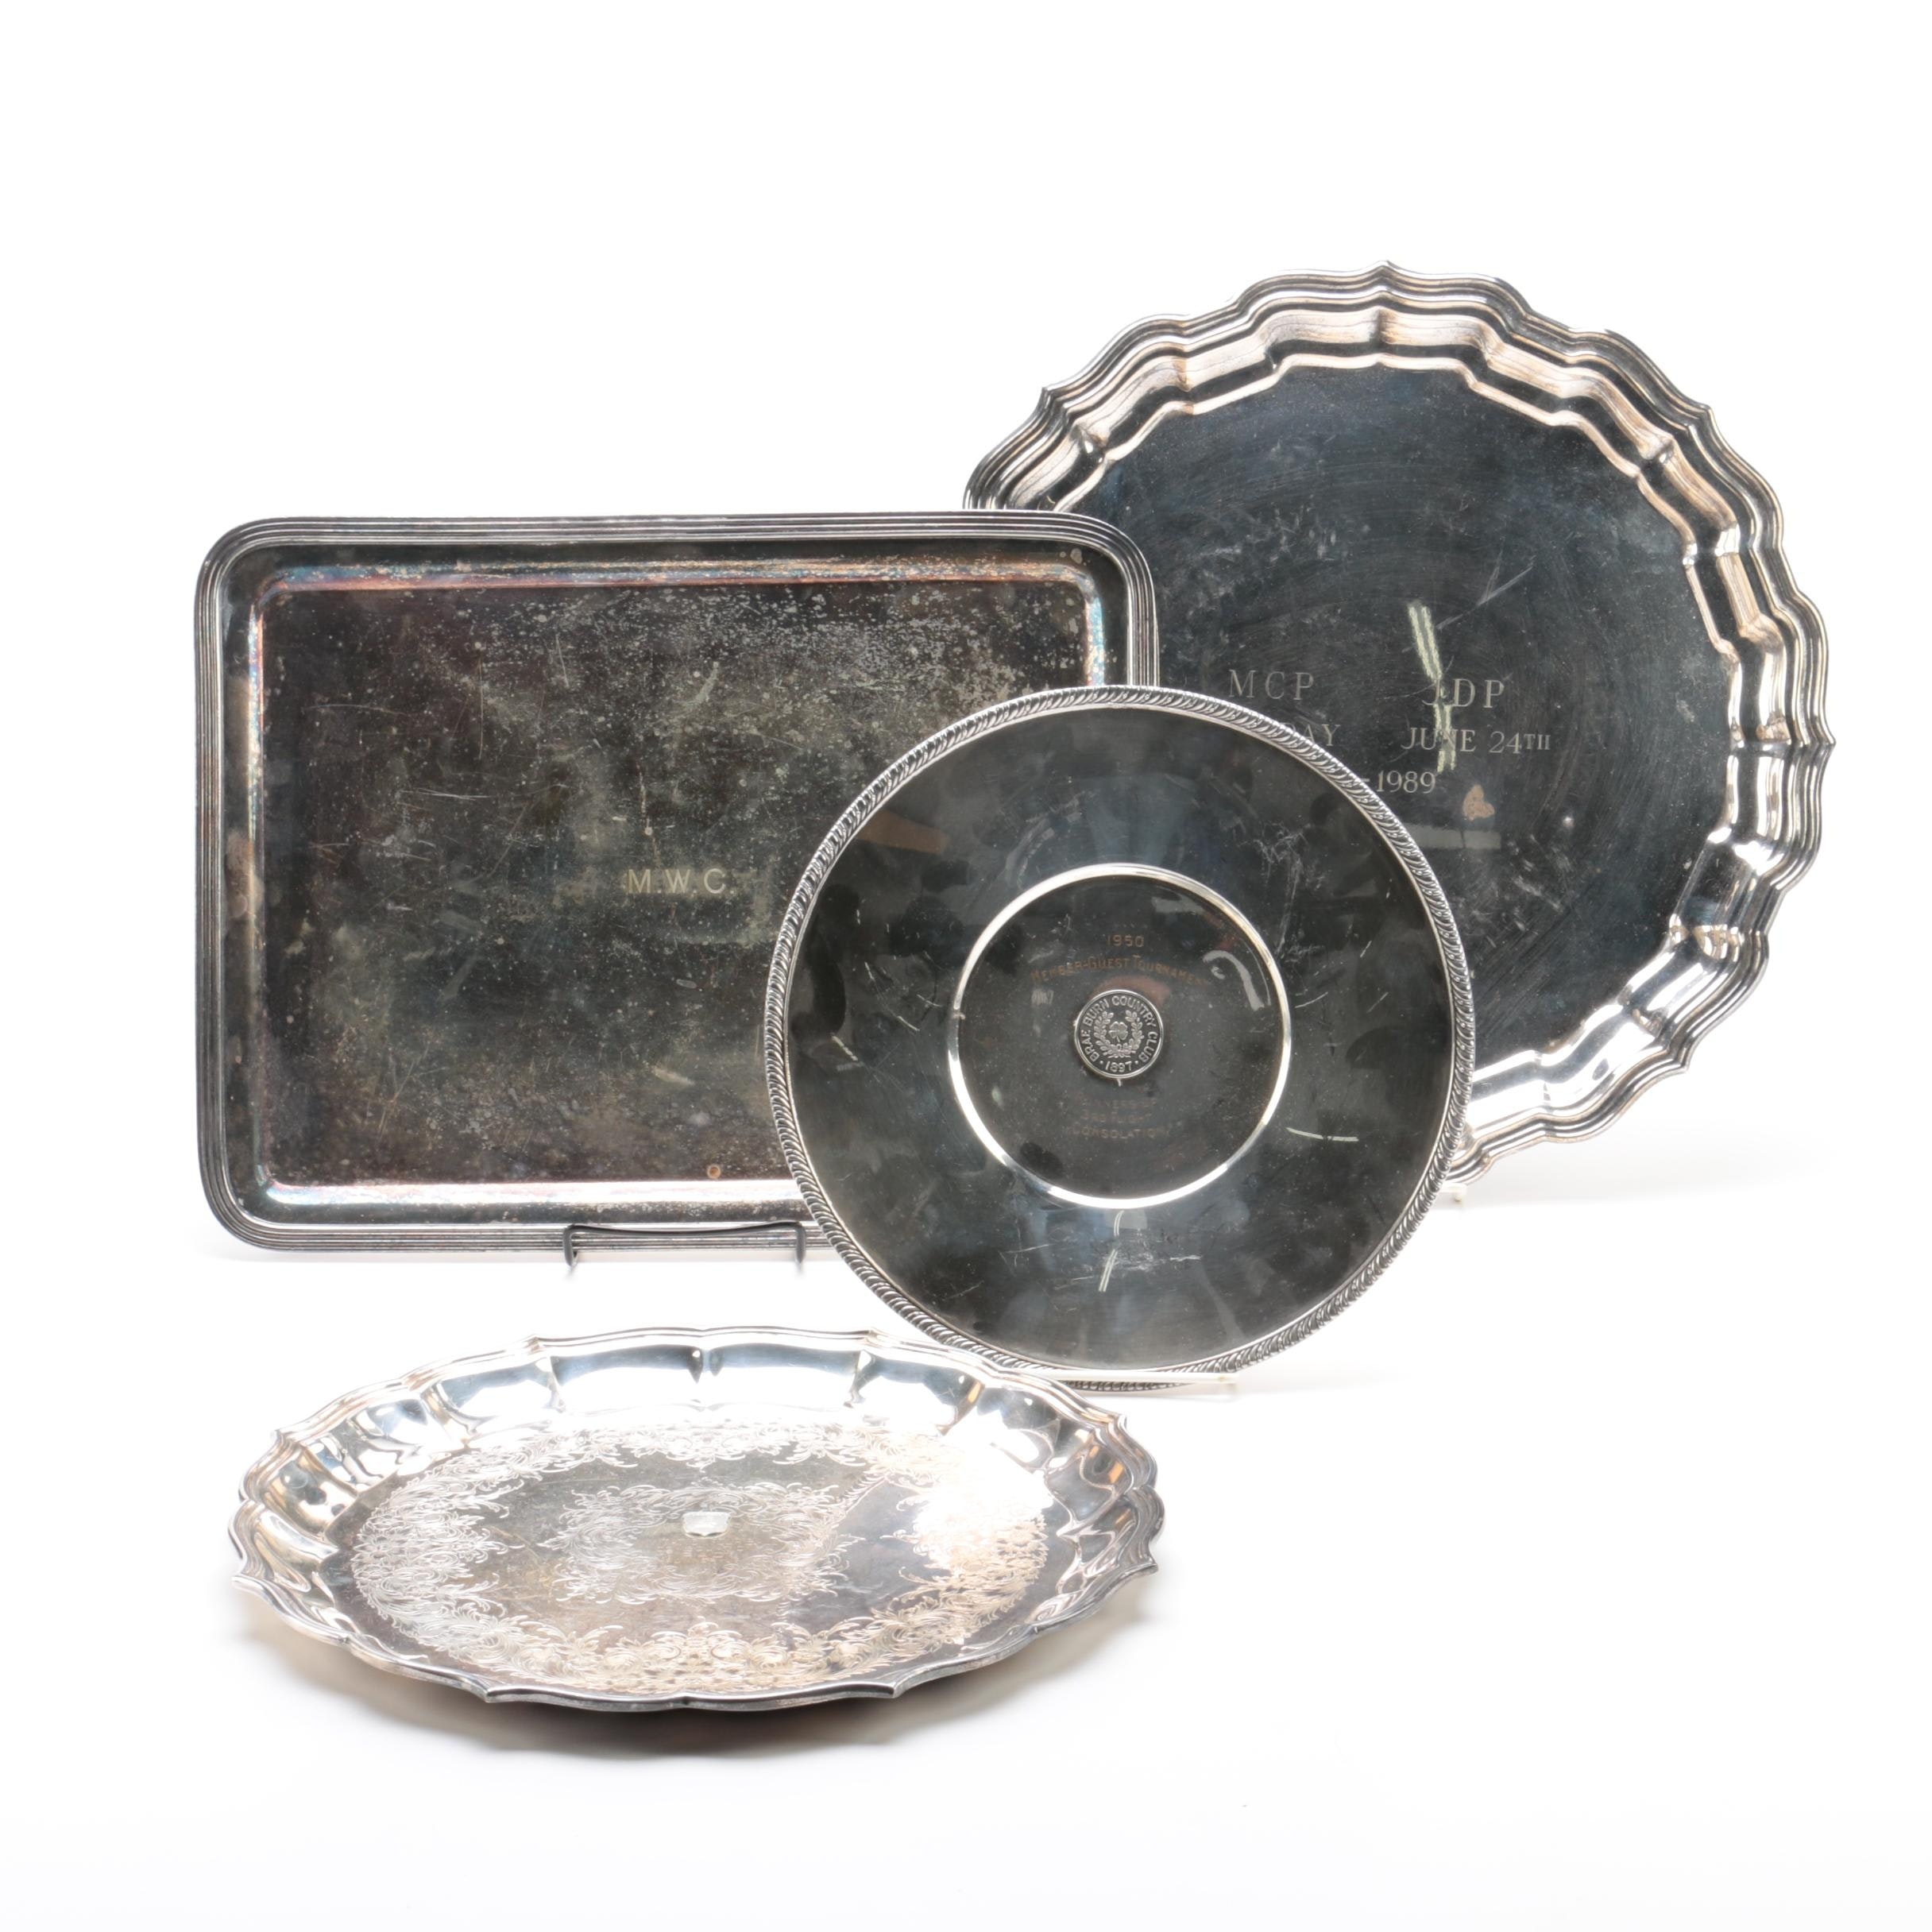 International Silver Co. Tray with Other Engraved Trays